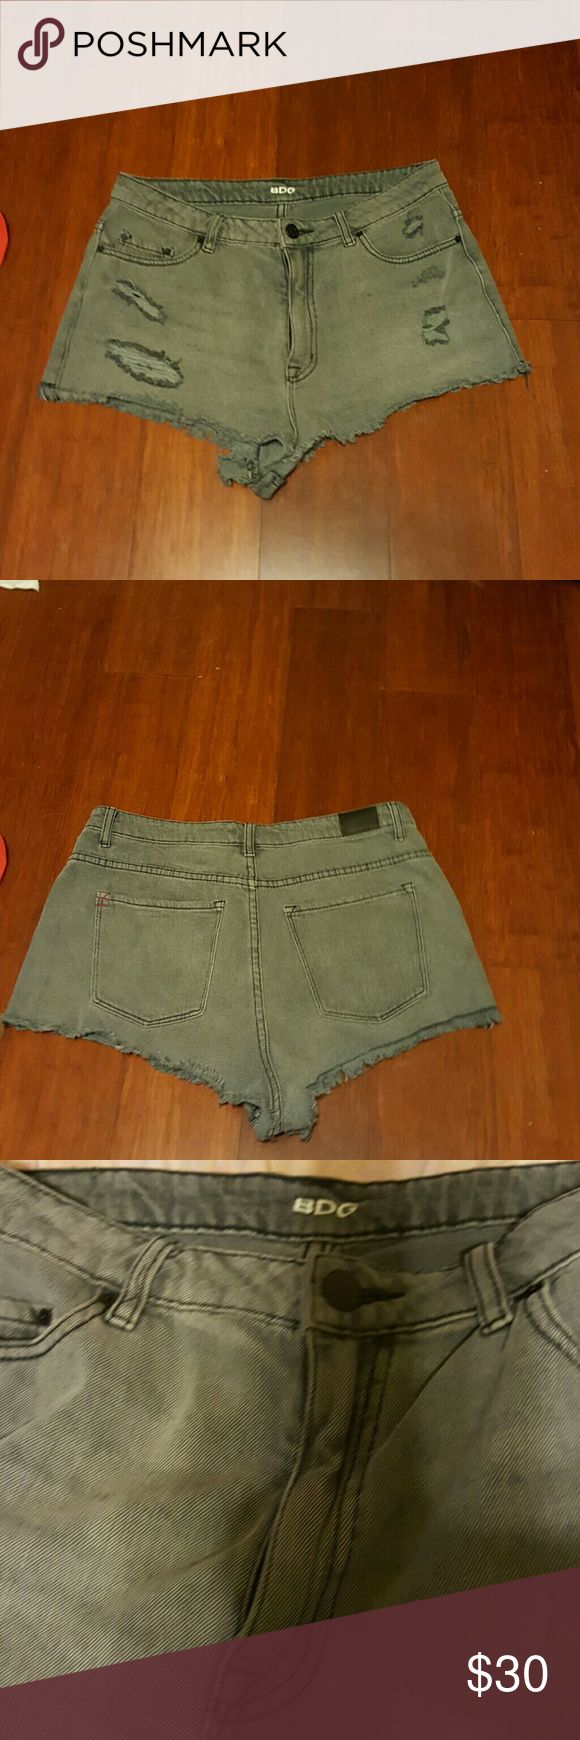 Sexy BDG DENIM HIGHRISE CHEEKY SHORTS sale markdow 100% cotton size 31w stone black,used but very good condition Shorts Jean Shorts